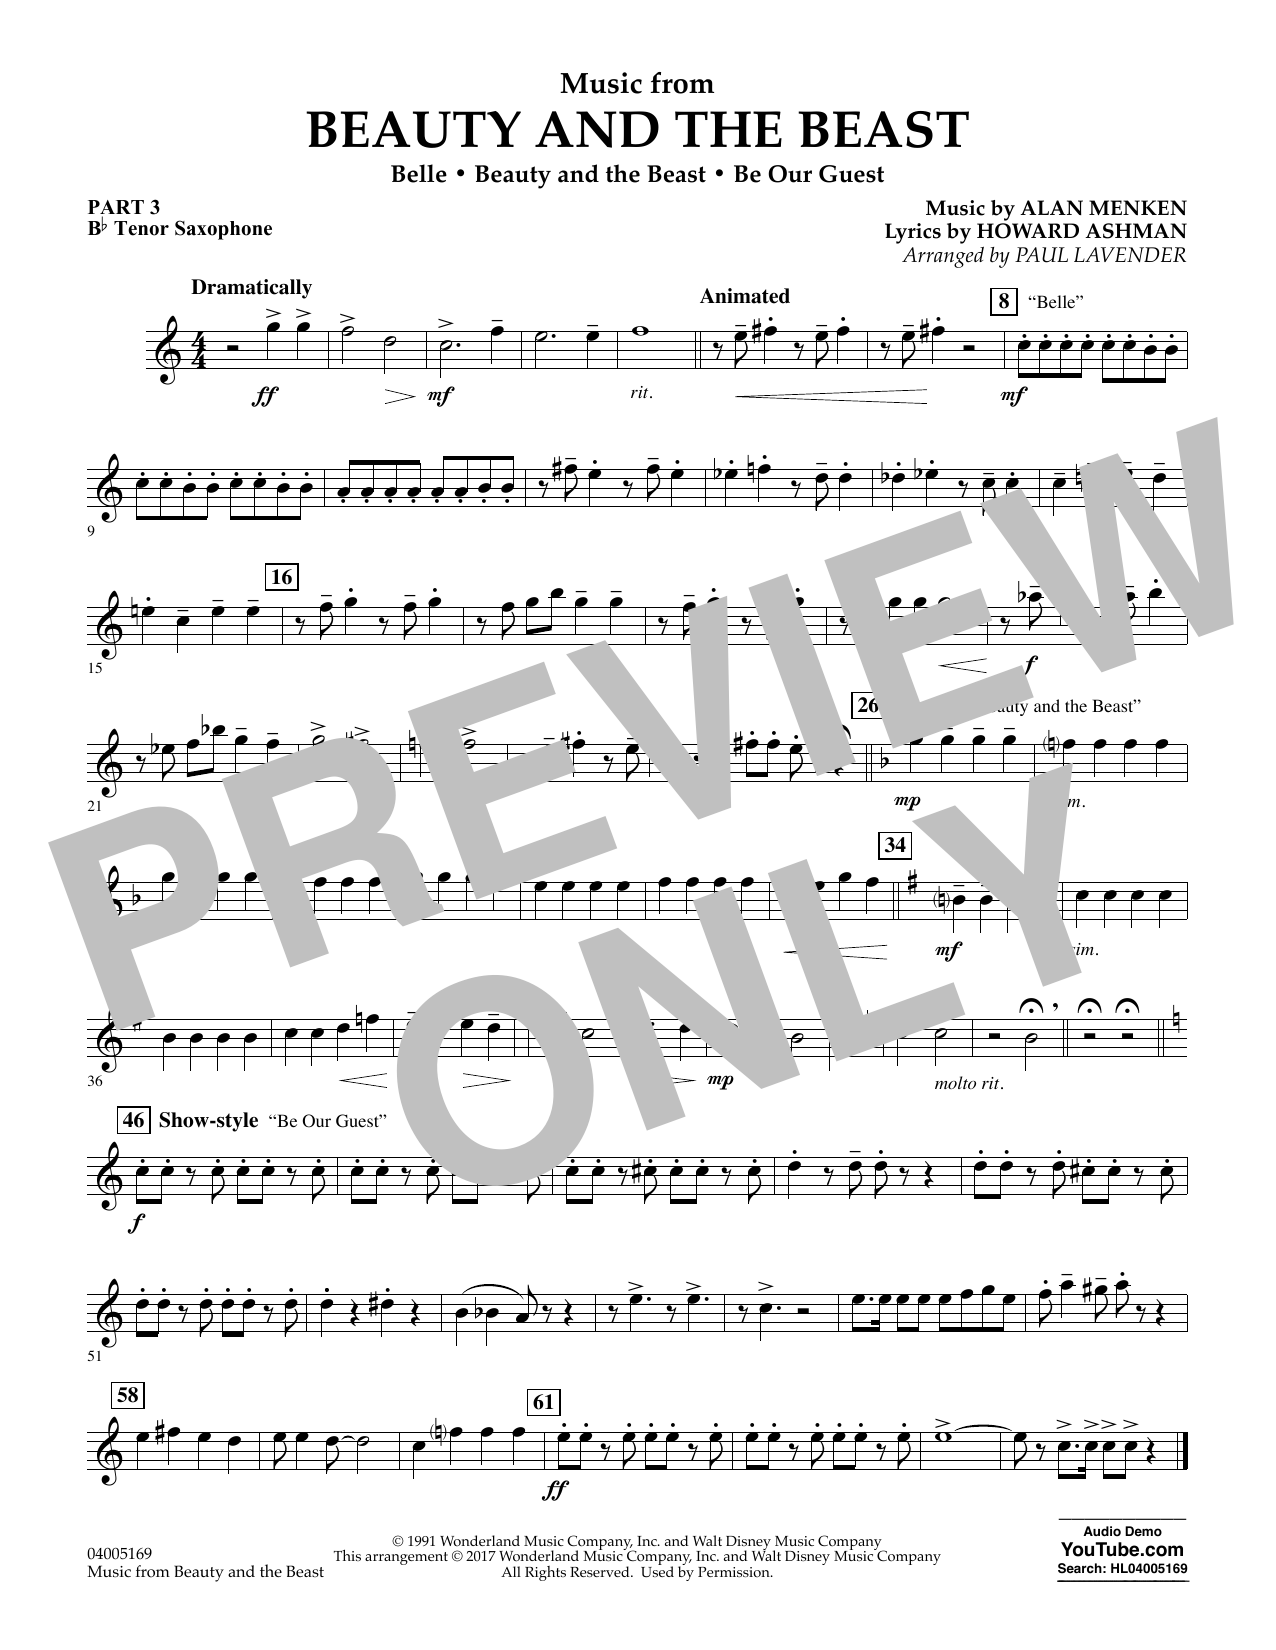 Paul Lavender Music from Beauty and the Beast - Pt.3 - Bb Tenor Saxophone sheet music notes and chords. Download Printable PDF.